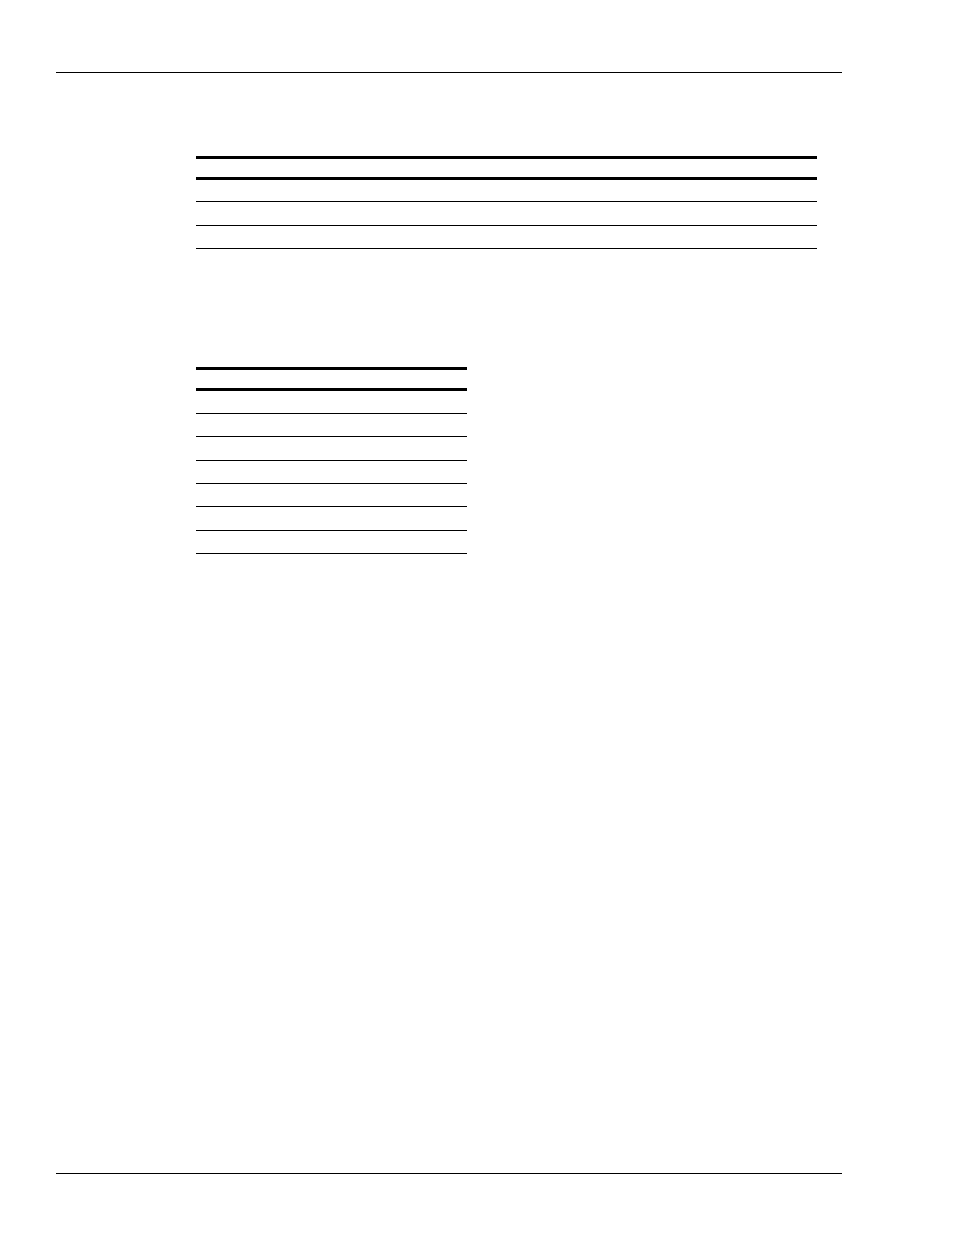 related documents, abbreviations and acronyms, warranty gasboyrelated documents, abbreviations and acronyms, warranty gasboy 9216k user manual page 6 36